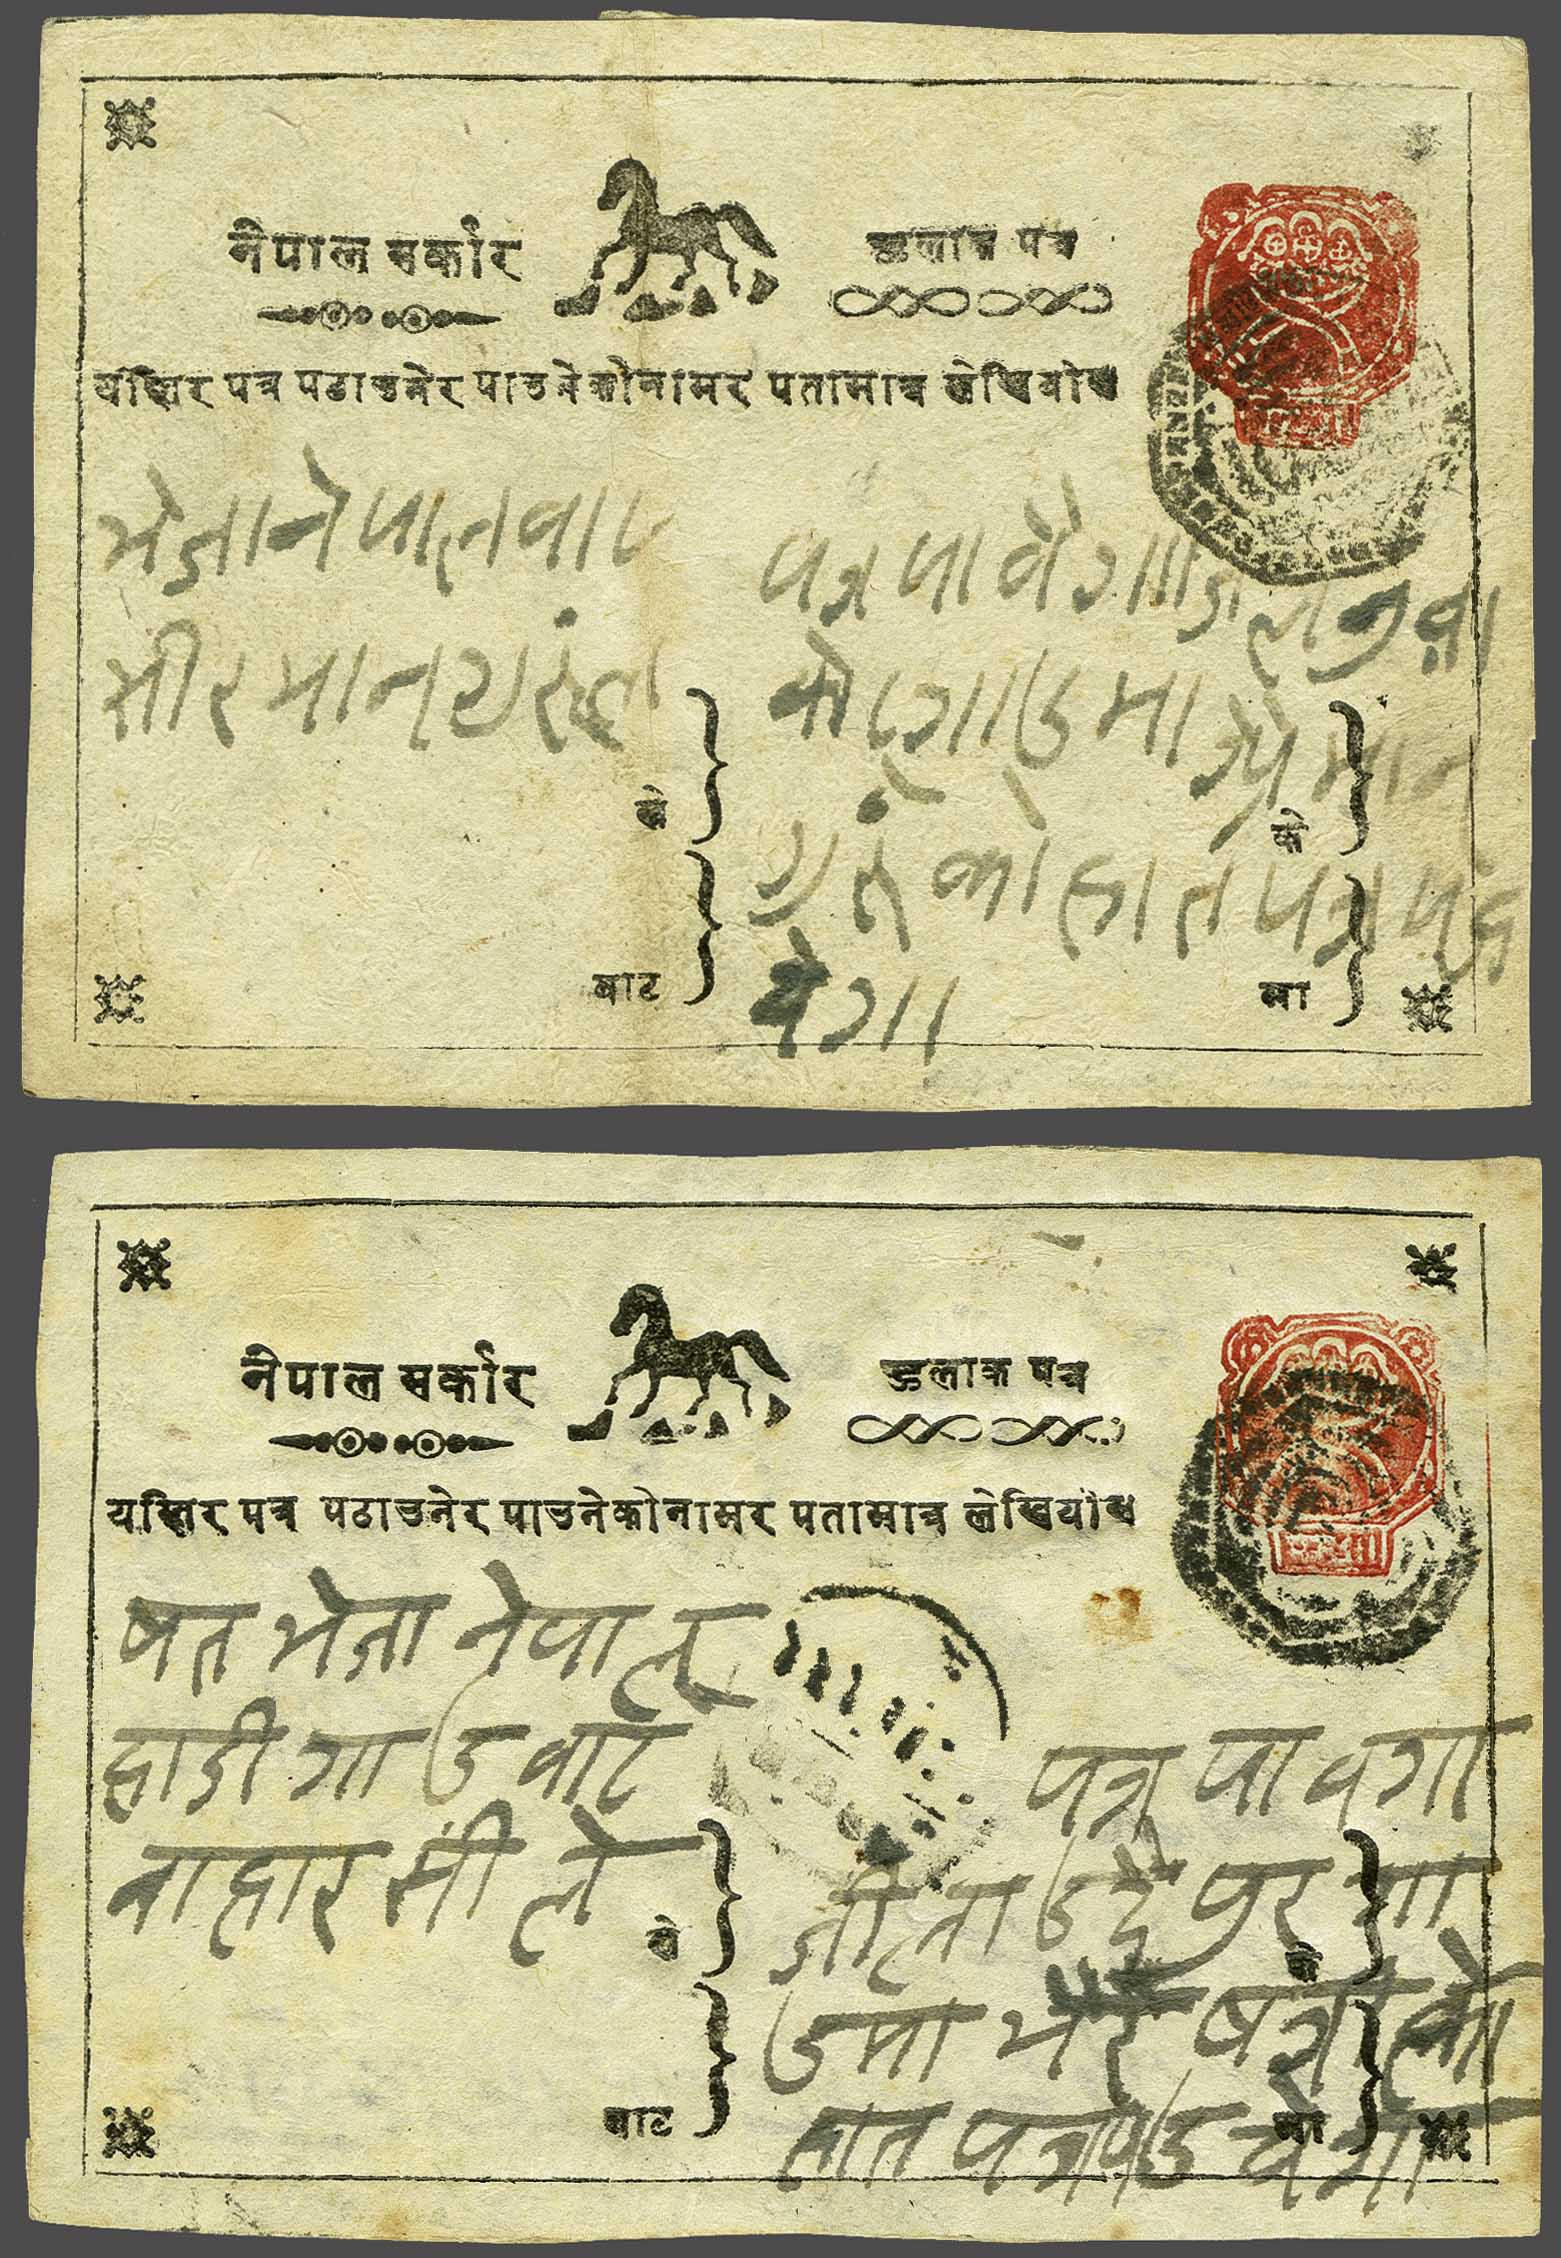 Lot 10 - Great Britain and former colonies Nepal -  Corinphila Veilingen Auction 245-246 Day 1 - Nepal - The Dick van der Wateren Collection, Foreign countries - Single lots, Picture postcards